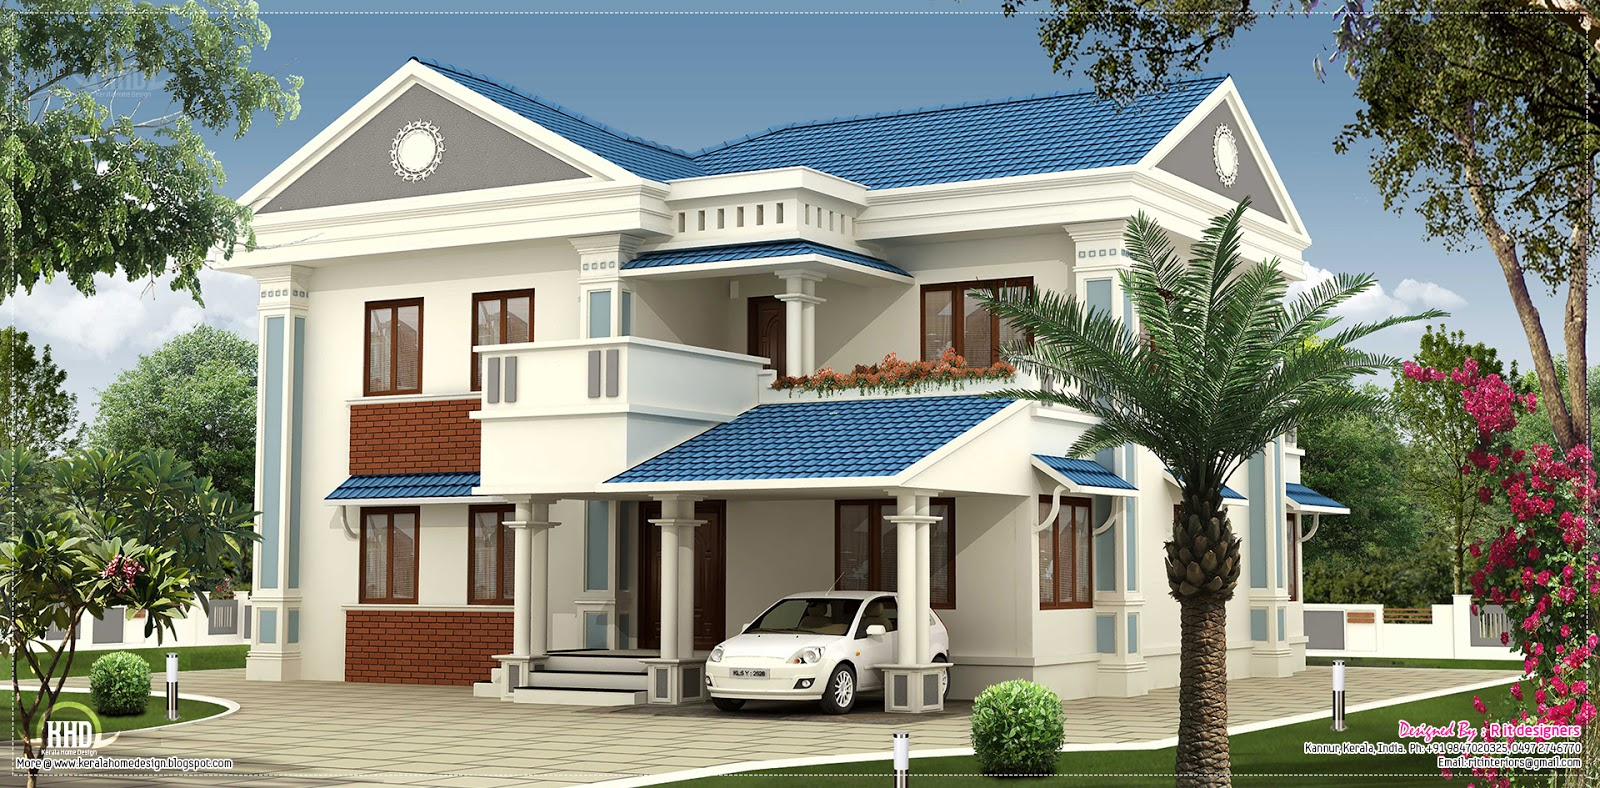 20 Stunning House Plan For 2000 Sq Ft New At Luxury Best 25 800 ...